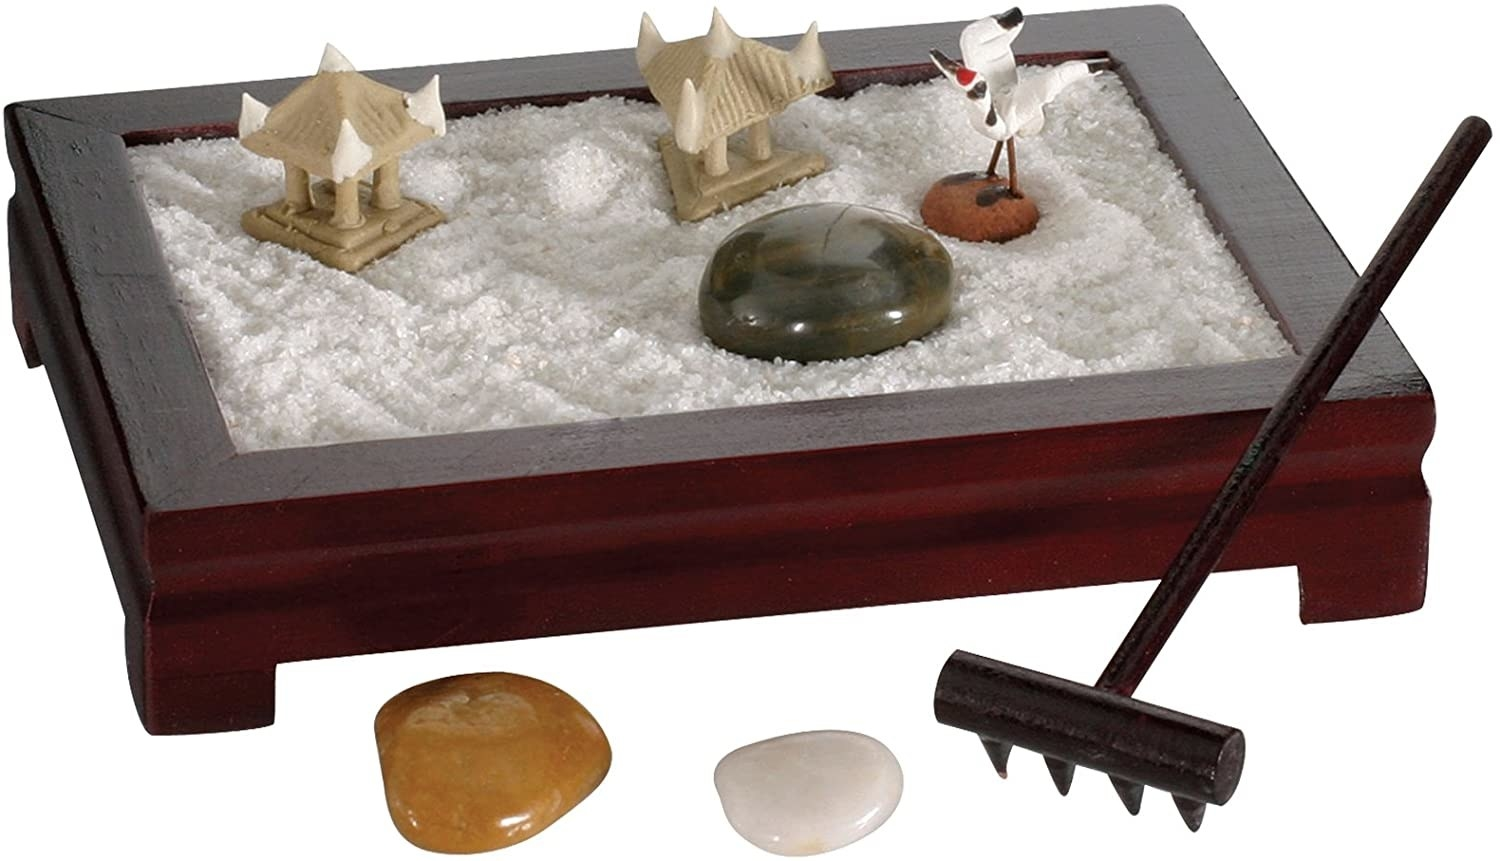 a sand garden with crystals and a raking tool